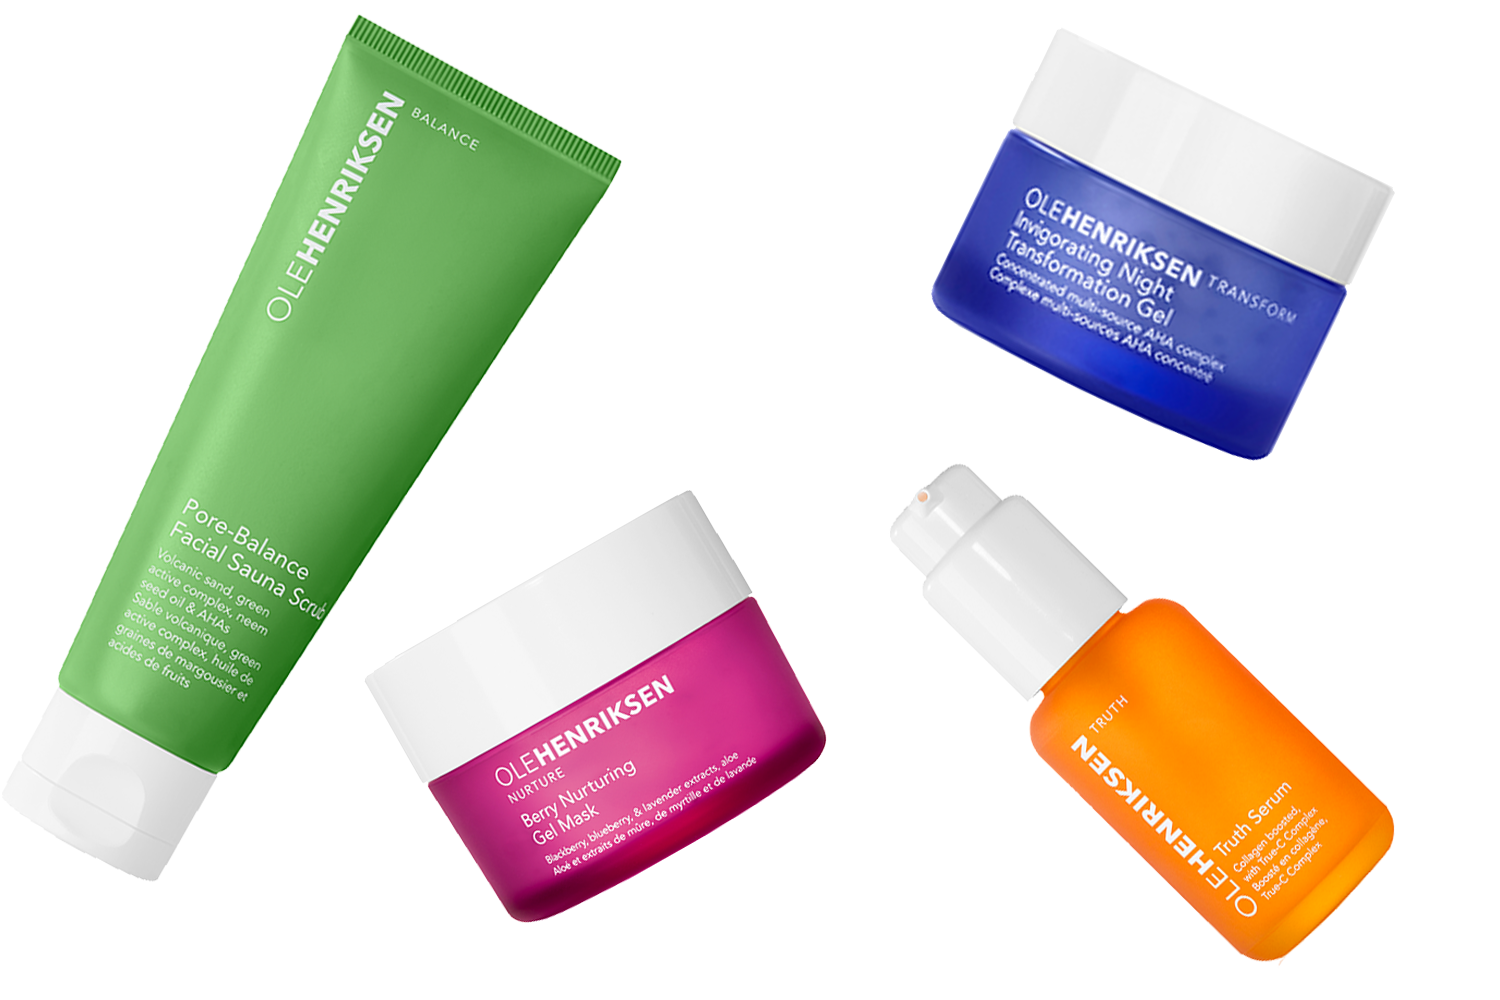 HOLLYWOOD'S MOST SUCCESSFUL SKIN CARE BRAND GETS A REVAMP